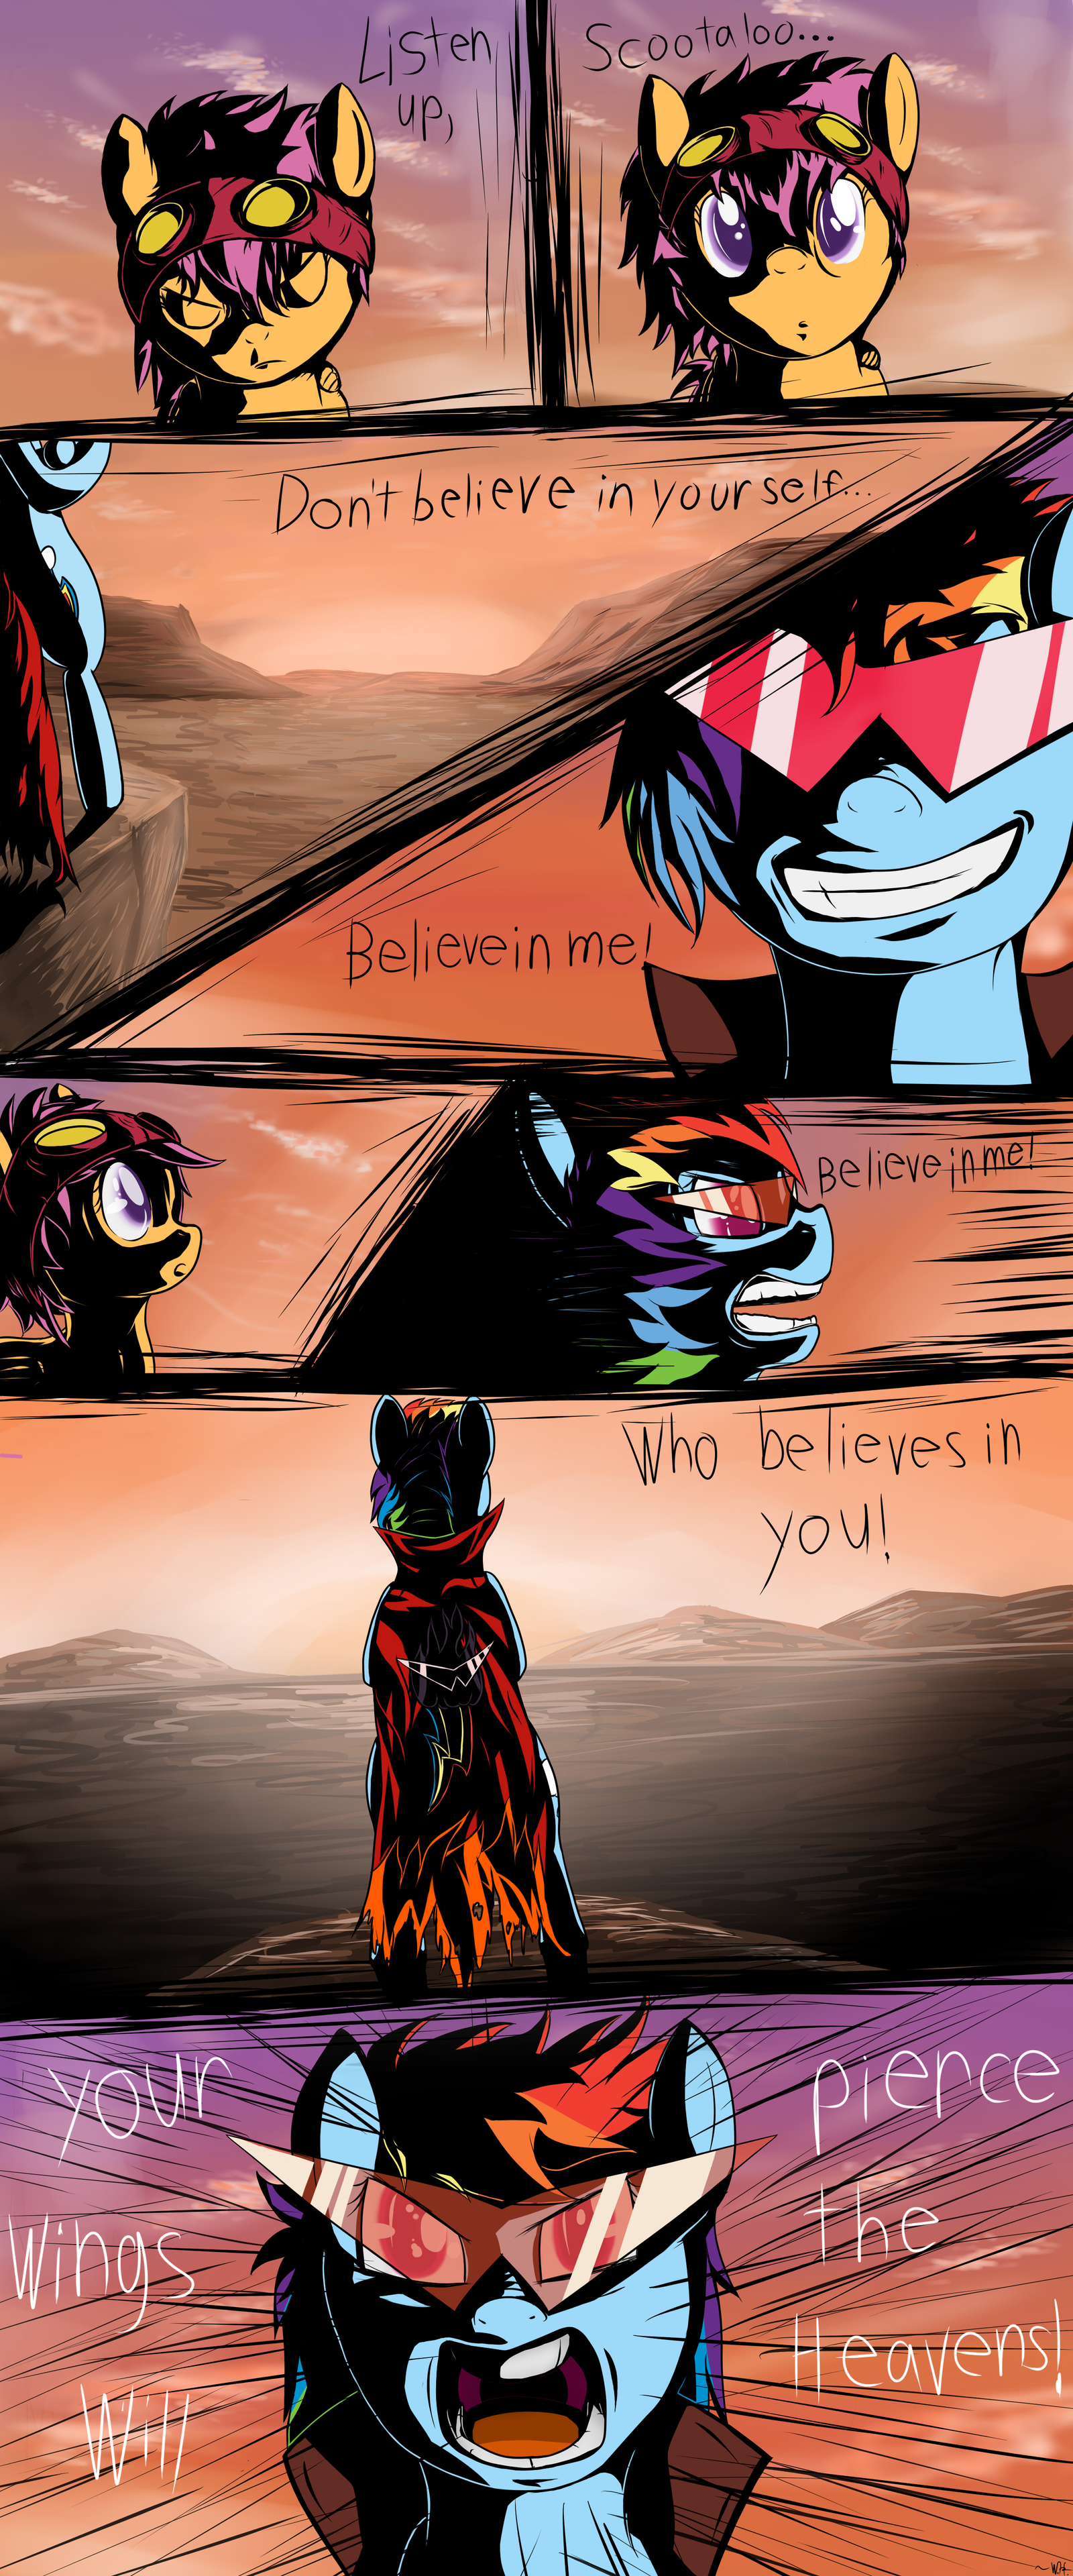 Believe in who believes in you! by Brony2you